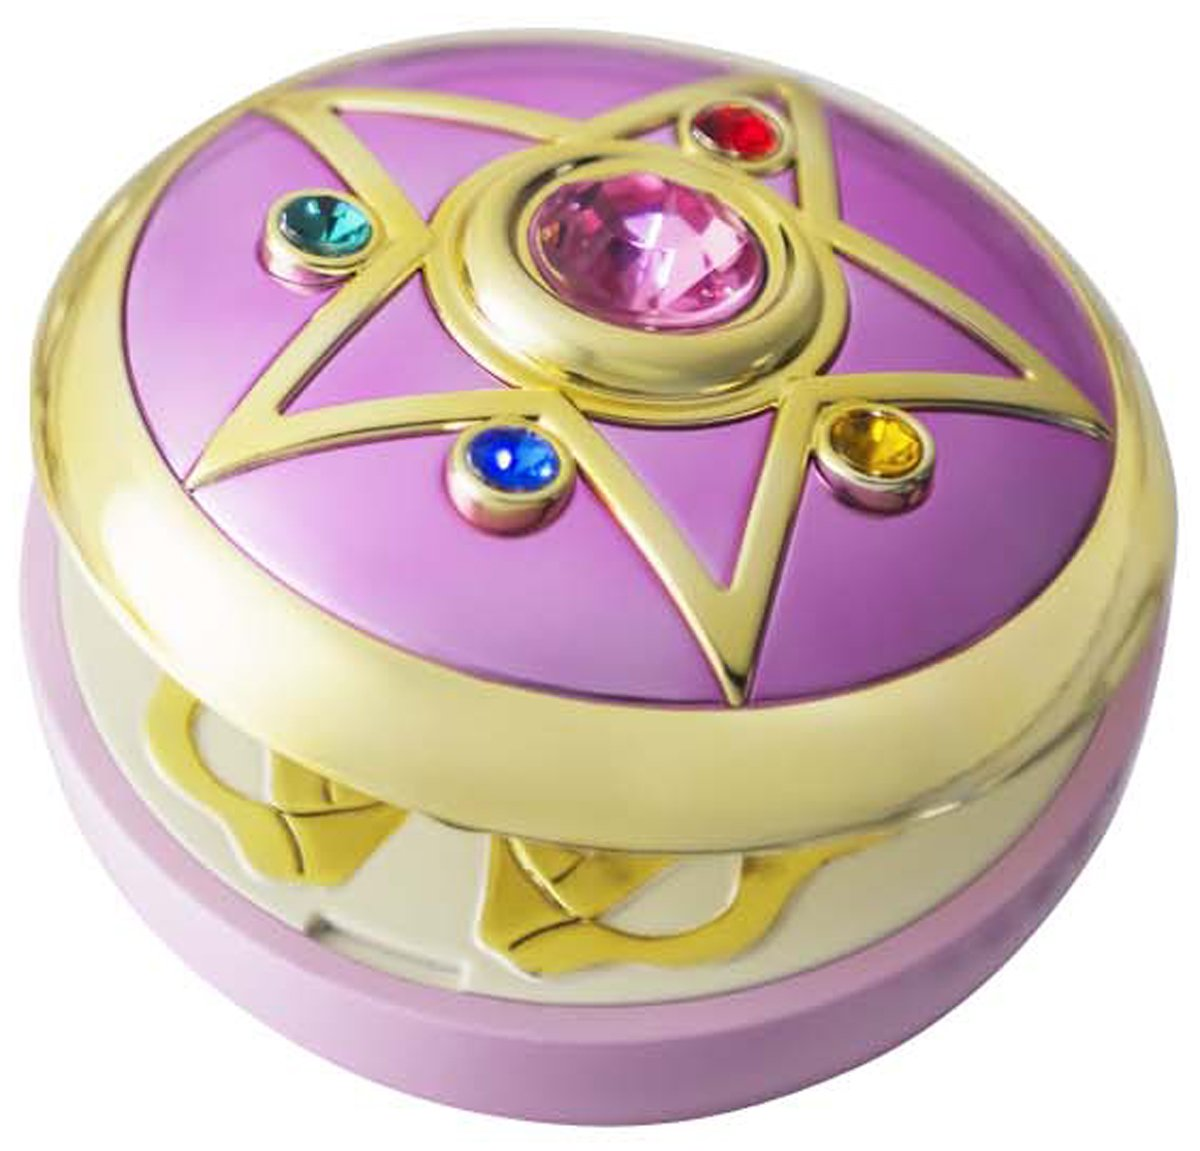 Bandai - Réplique Sailor Moon - Crystal Star 7.5cm - 4543112938183: Amazon.es: Juguetes y juegos